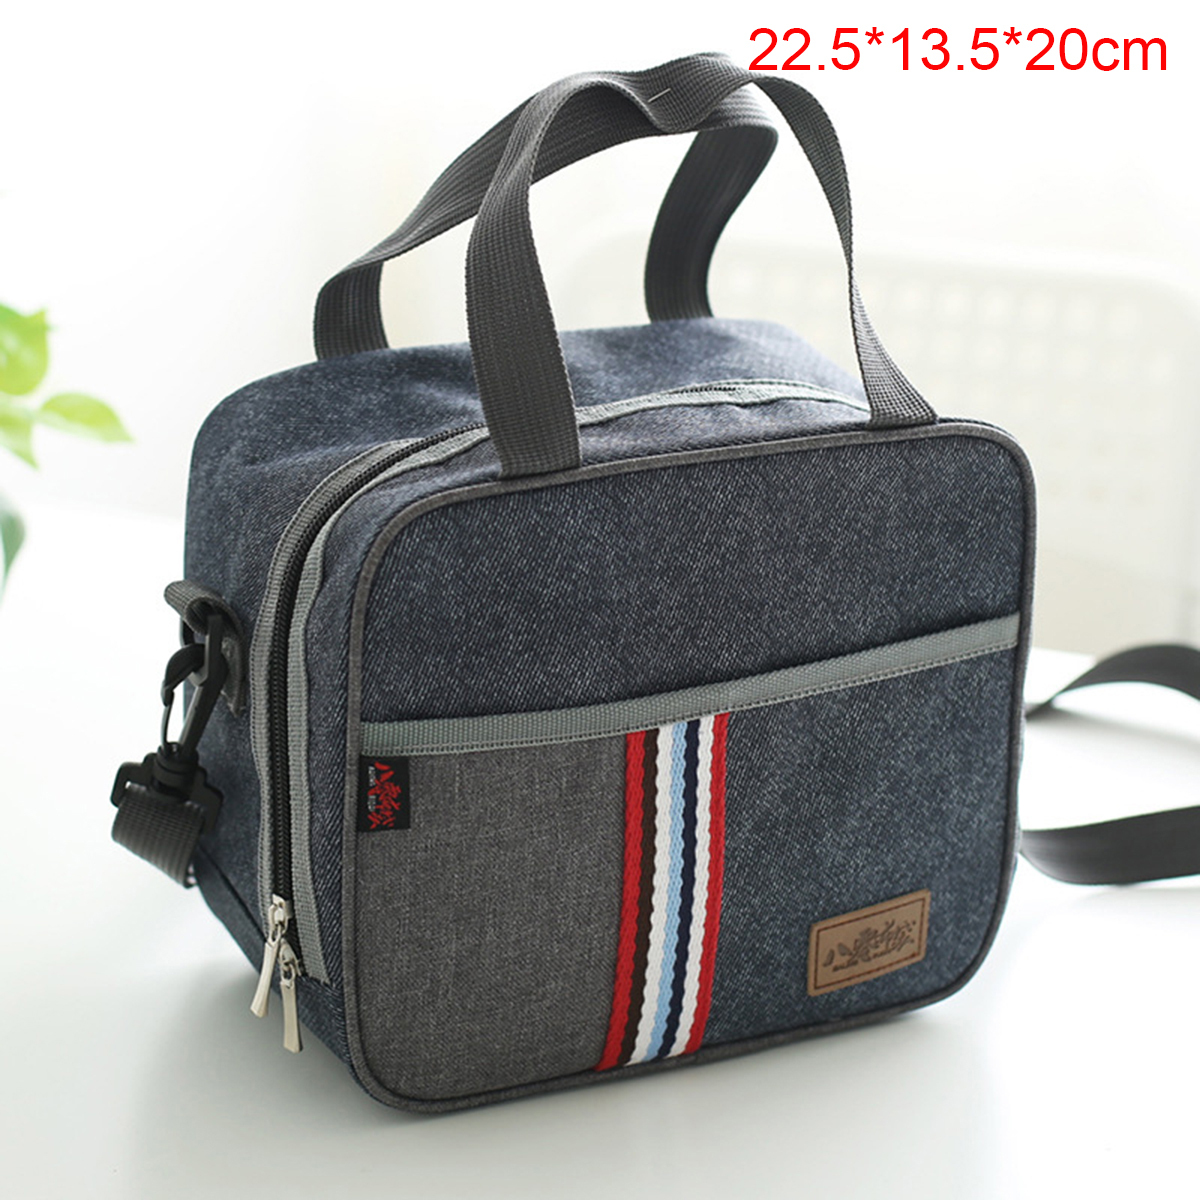 portable insulated thermal cooler lunch box bento tote picnic storage bag case ebay. Black Bedroom Furniture Sets. Home Design Ideas